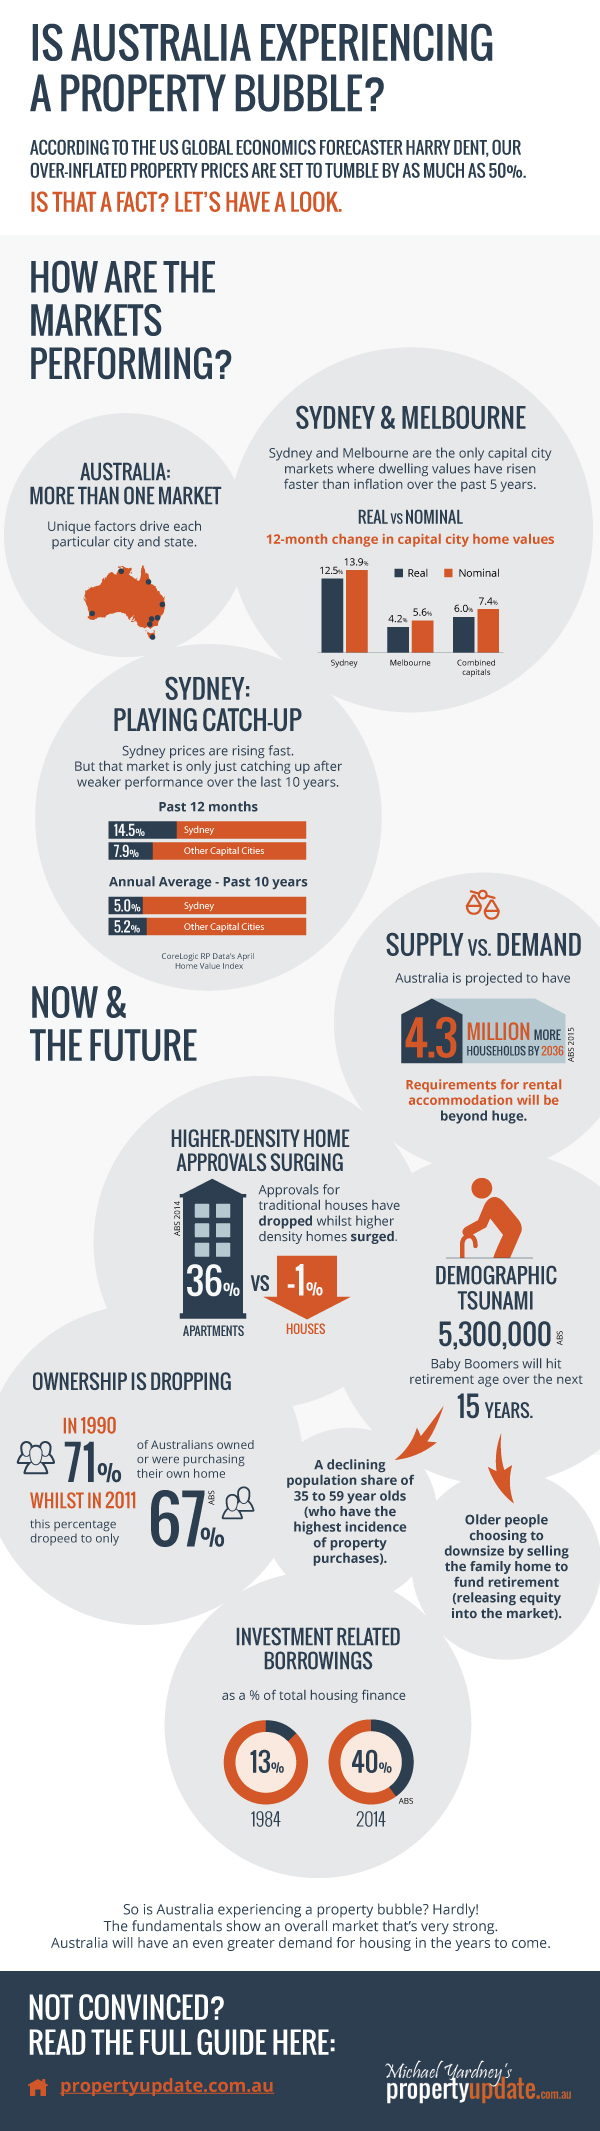 property-update-bubble-infographic-V2